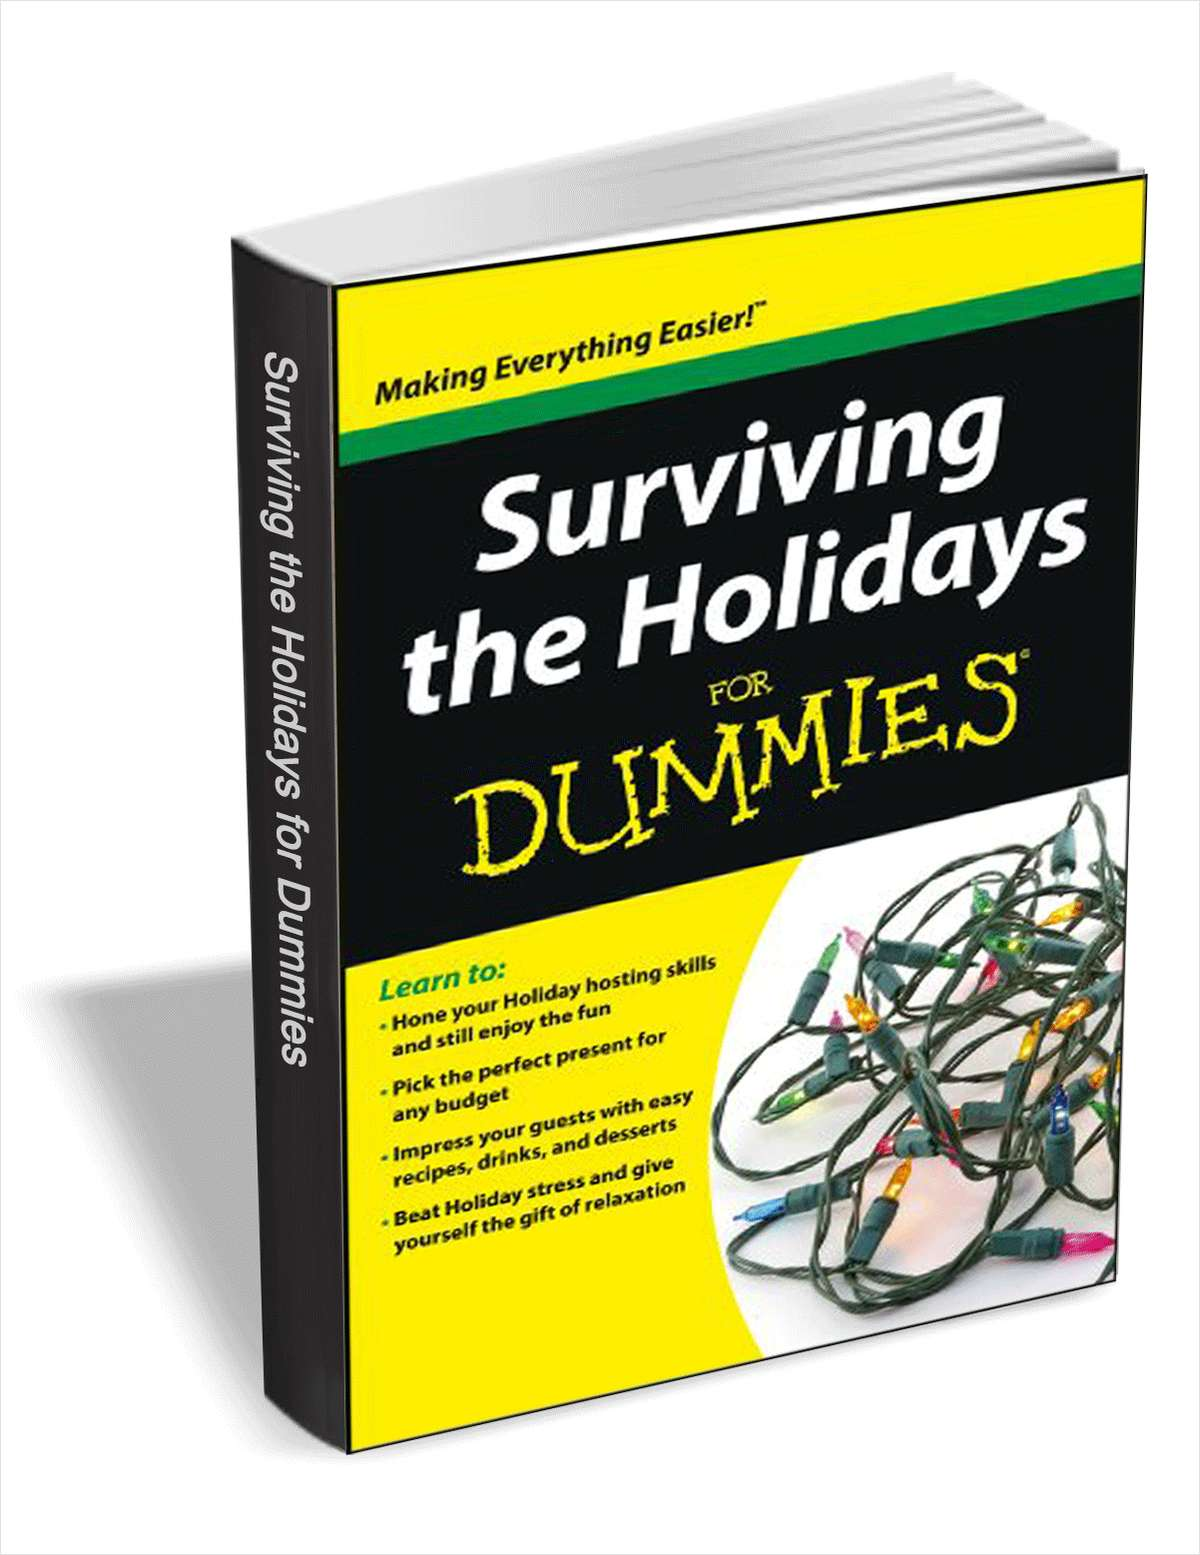 Surviving the Holidays For Dummies ($0.99 Value) FREE For a Limited Time Screenshot